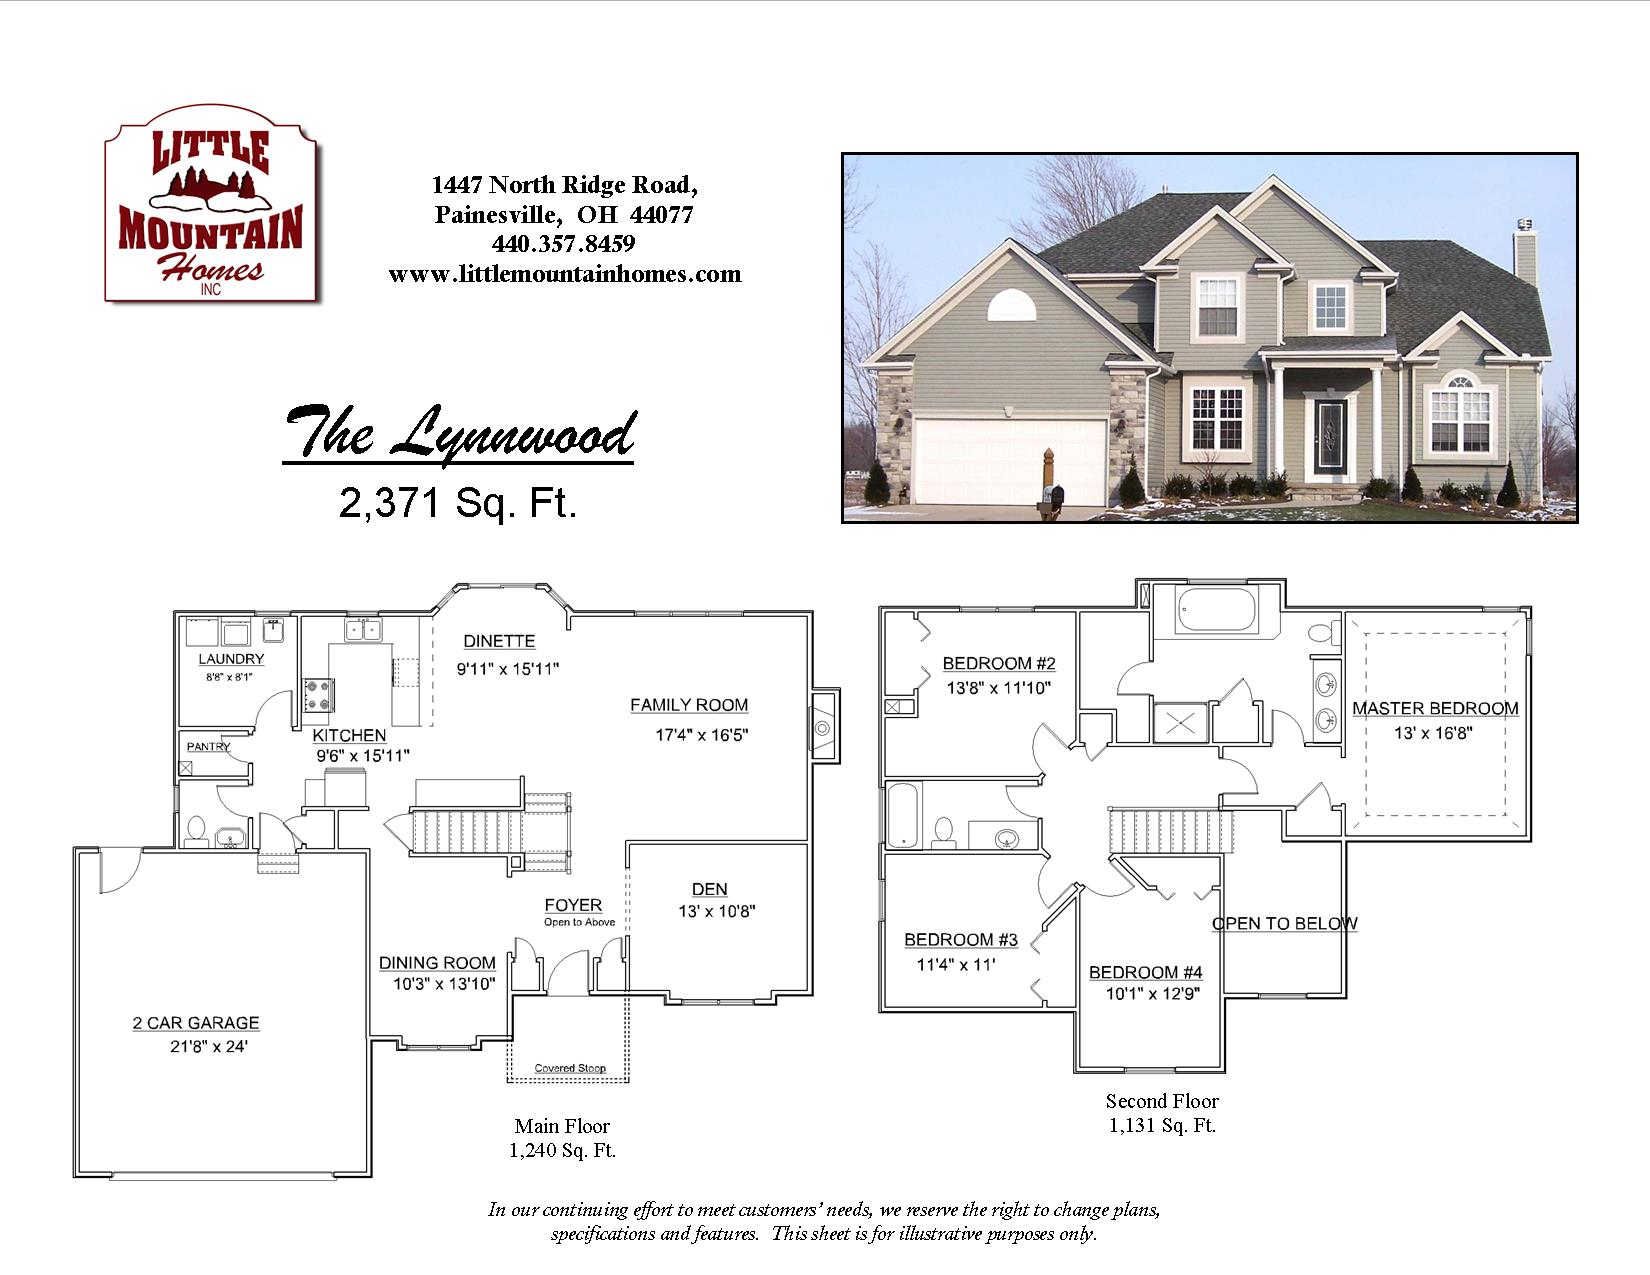 lynnwood colonial design little mountain homes click here to download floor plan pdf